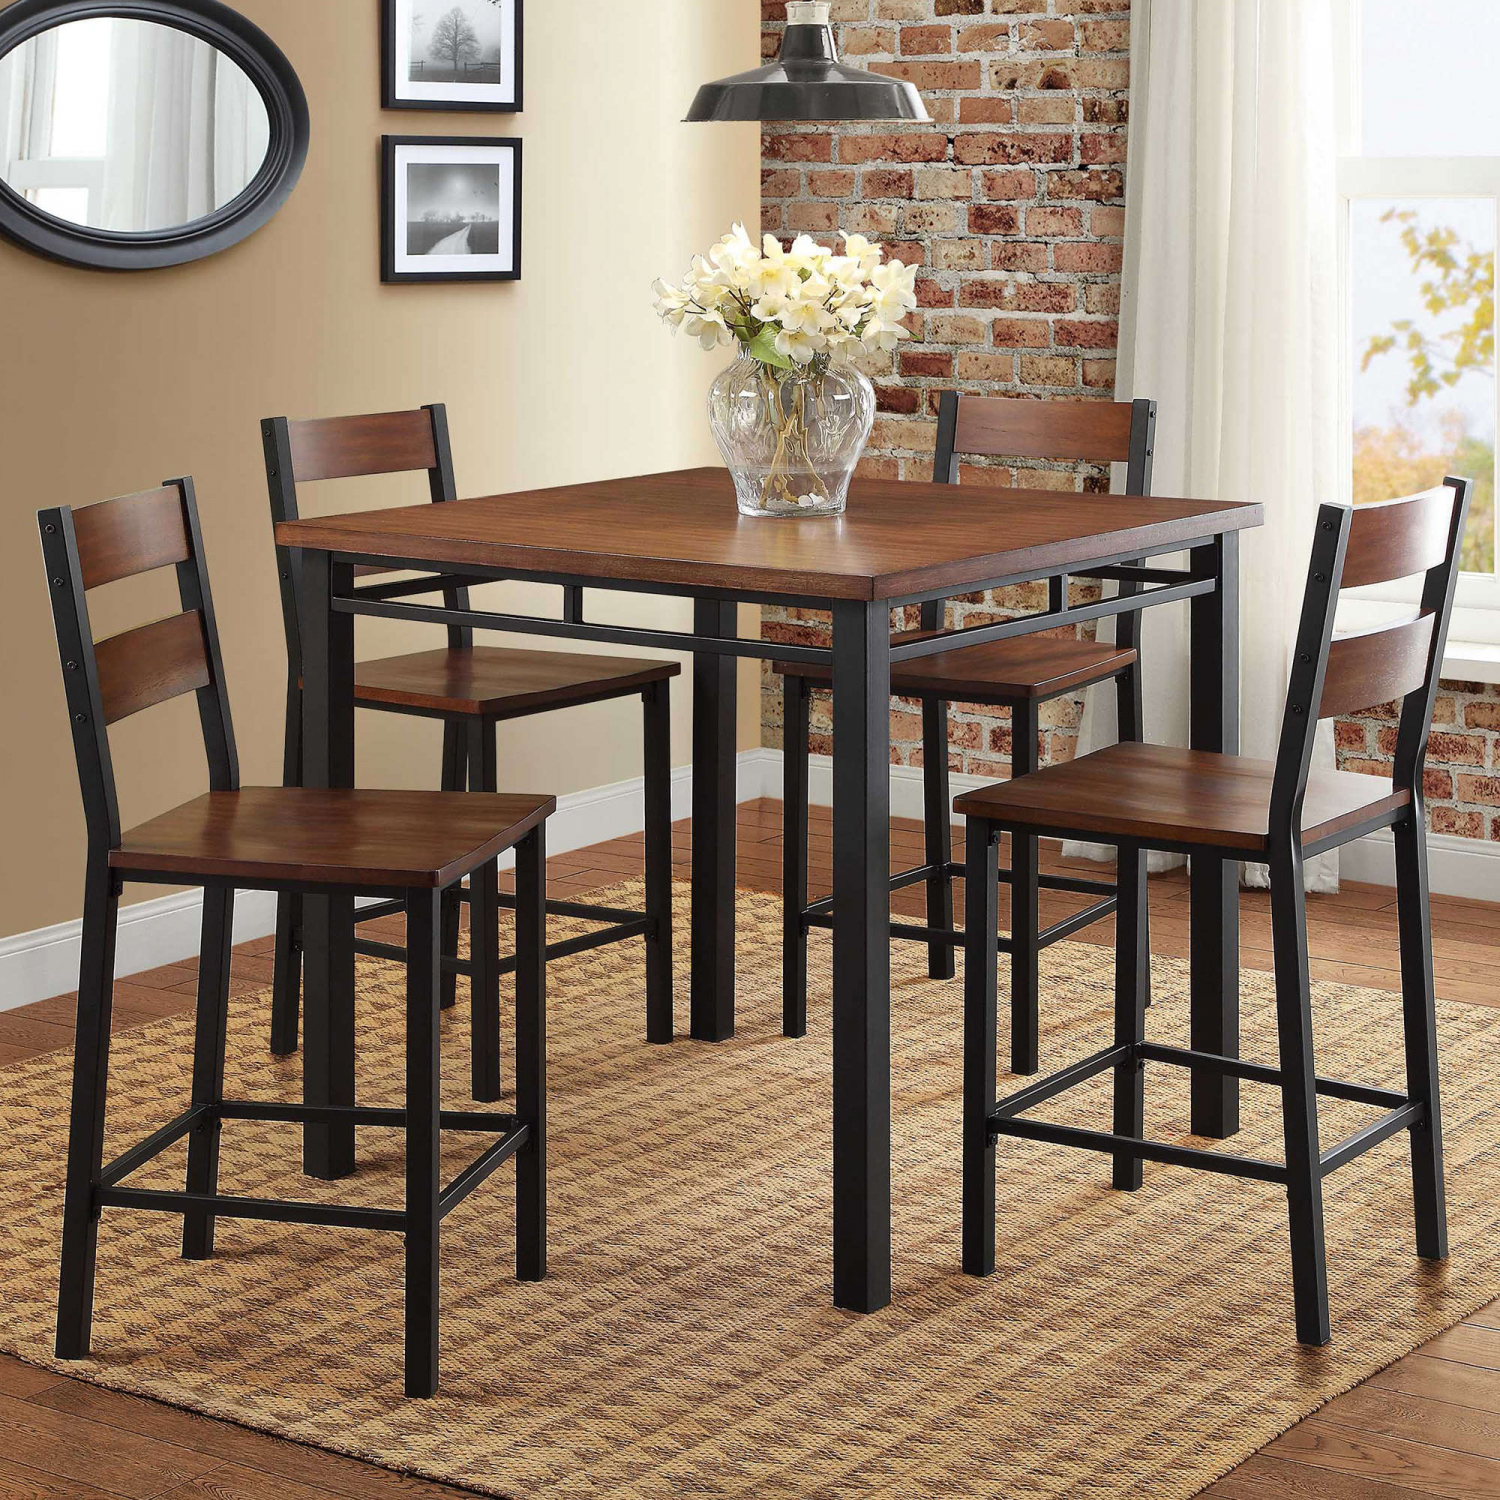 Details about Dining Room Table Set Counter Height Kitchen Tables And  Chairs 5 Piece Wood Sets